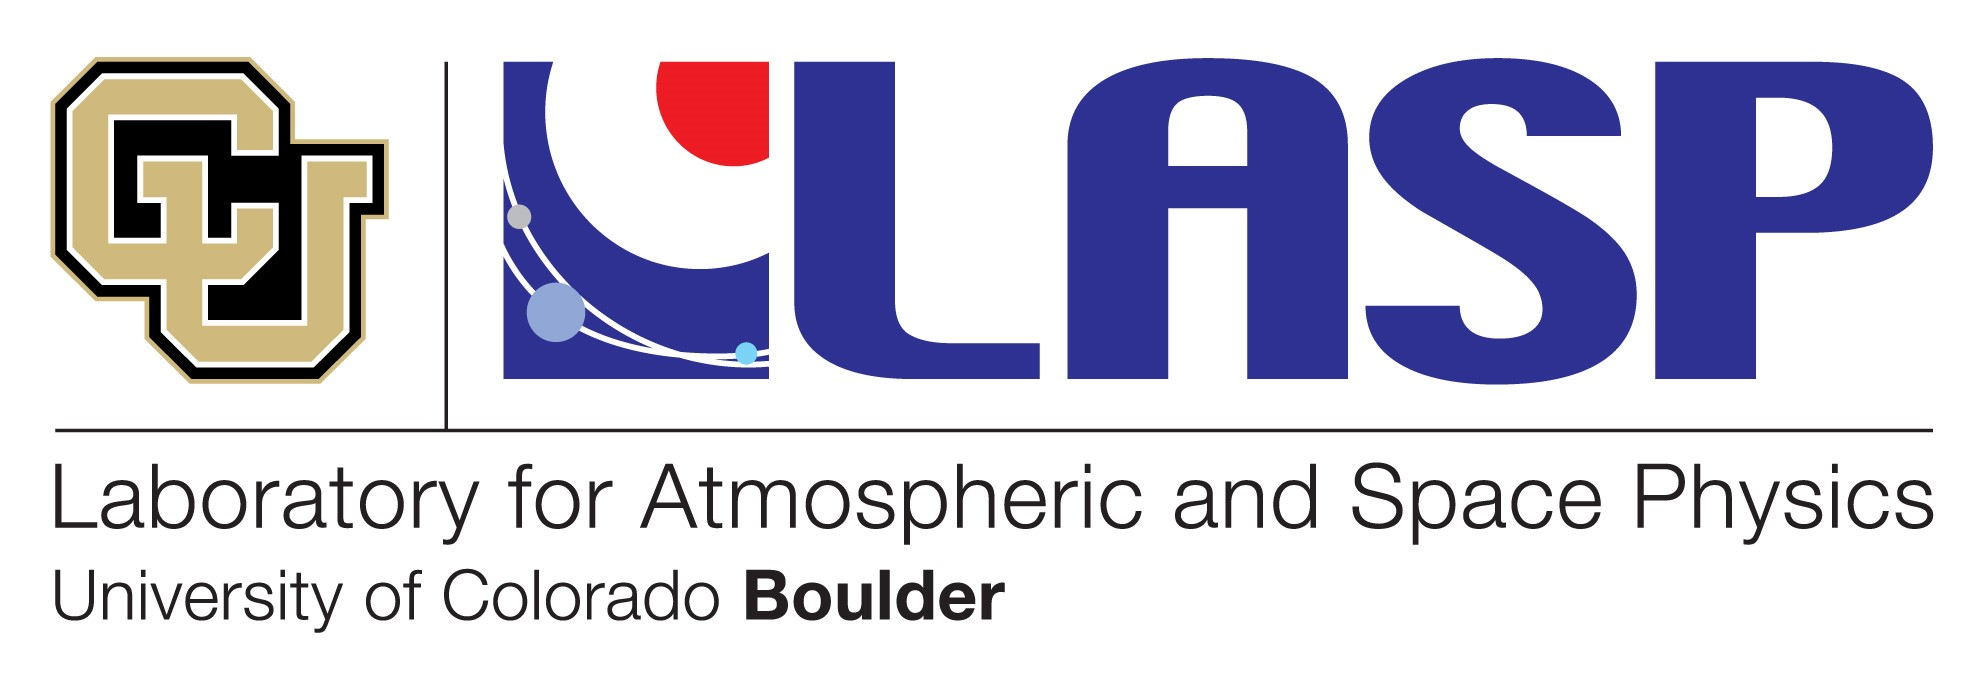 University of Colorado Laboratory for Atmosphere and Space Physics